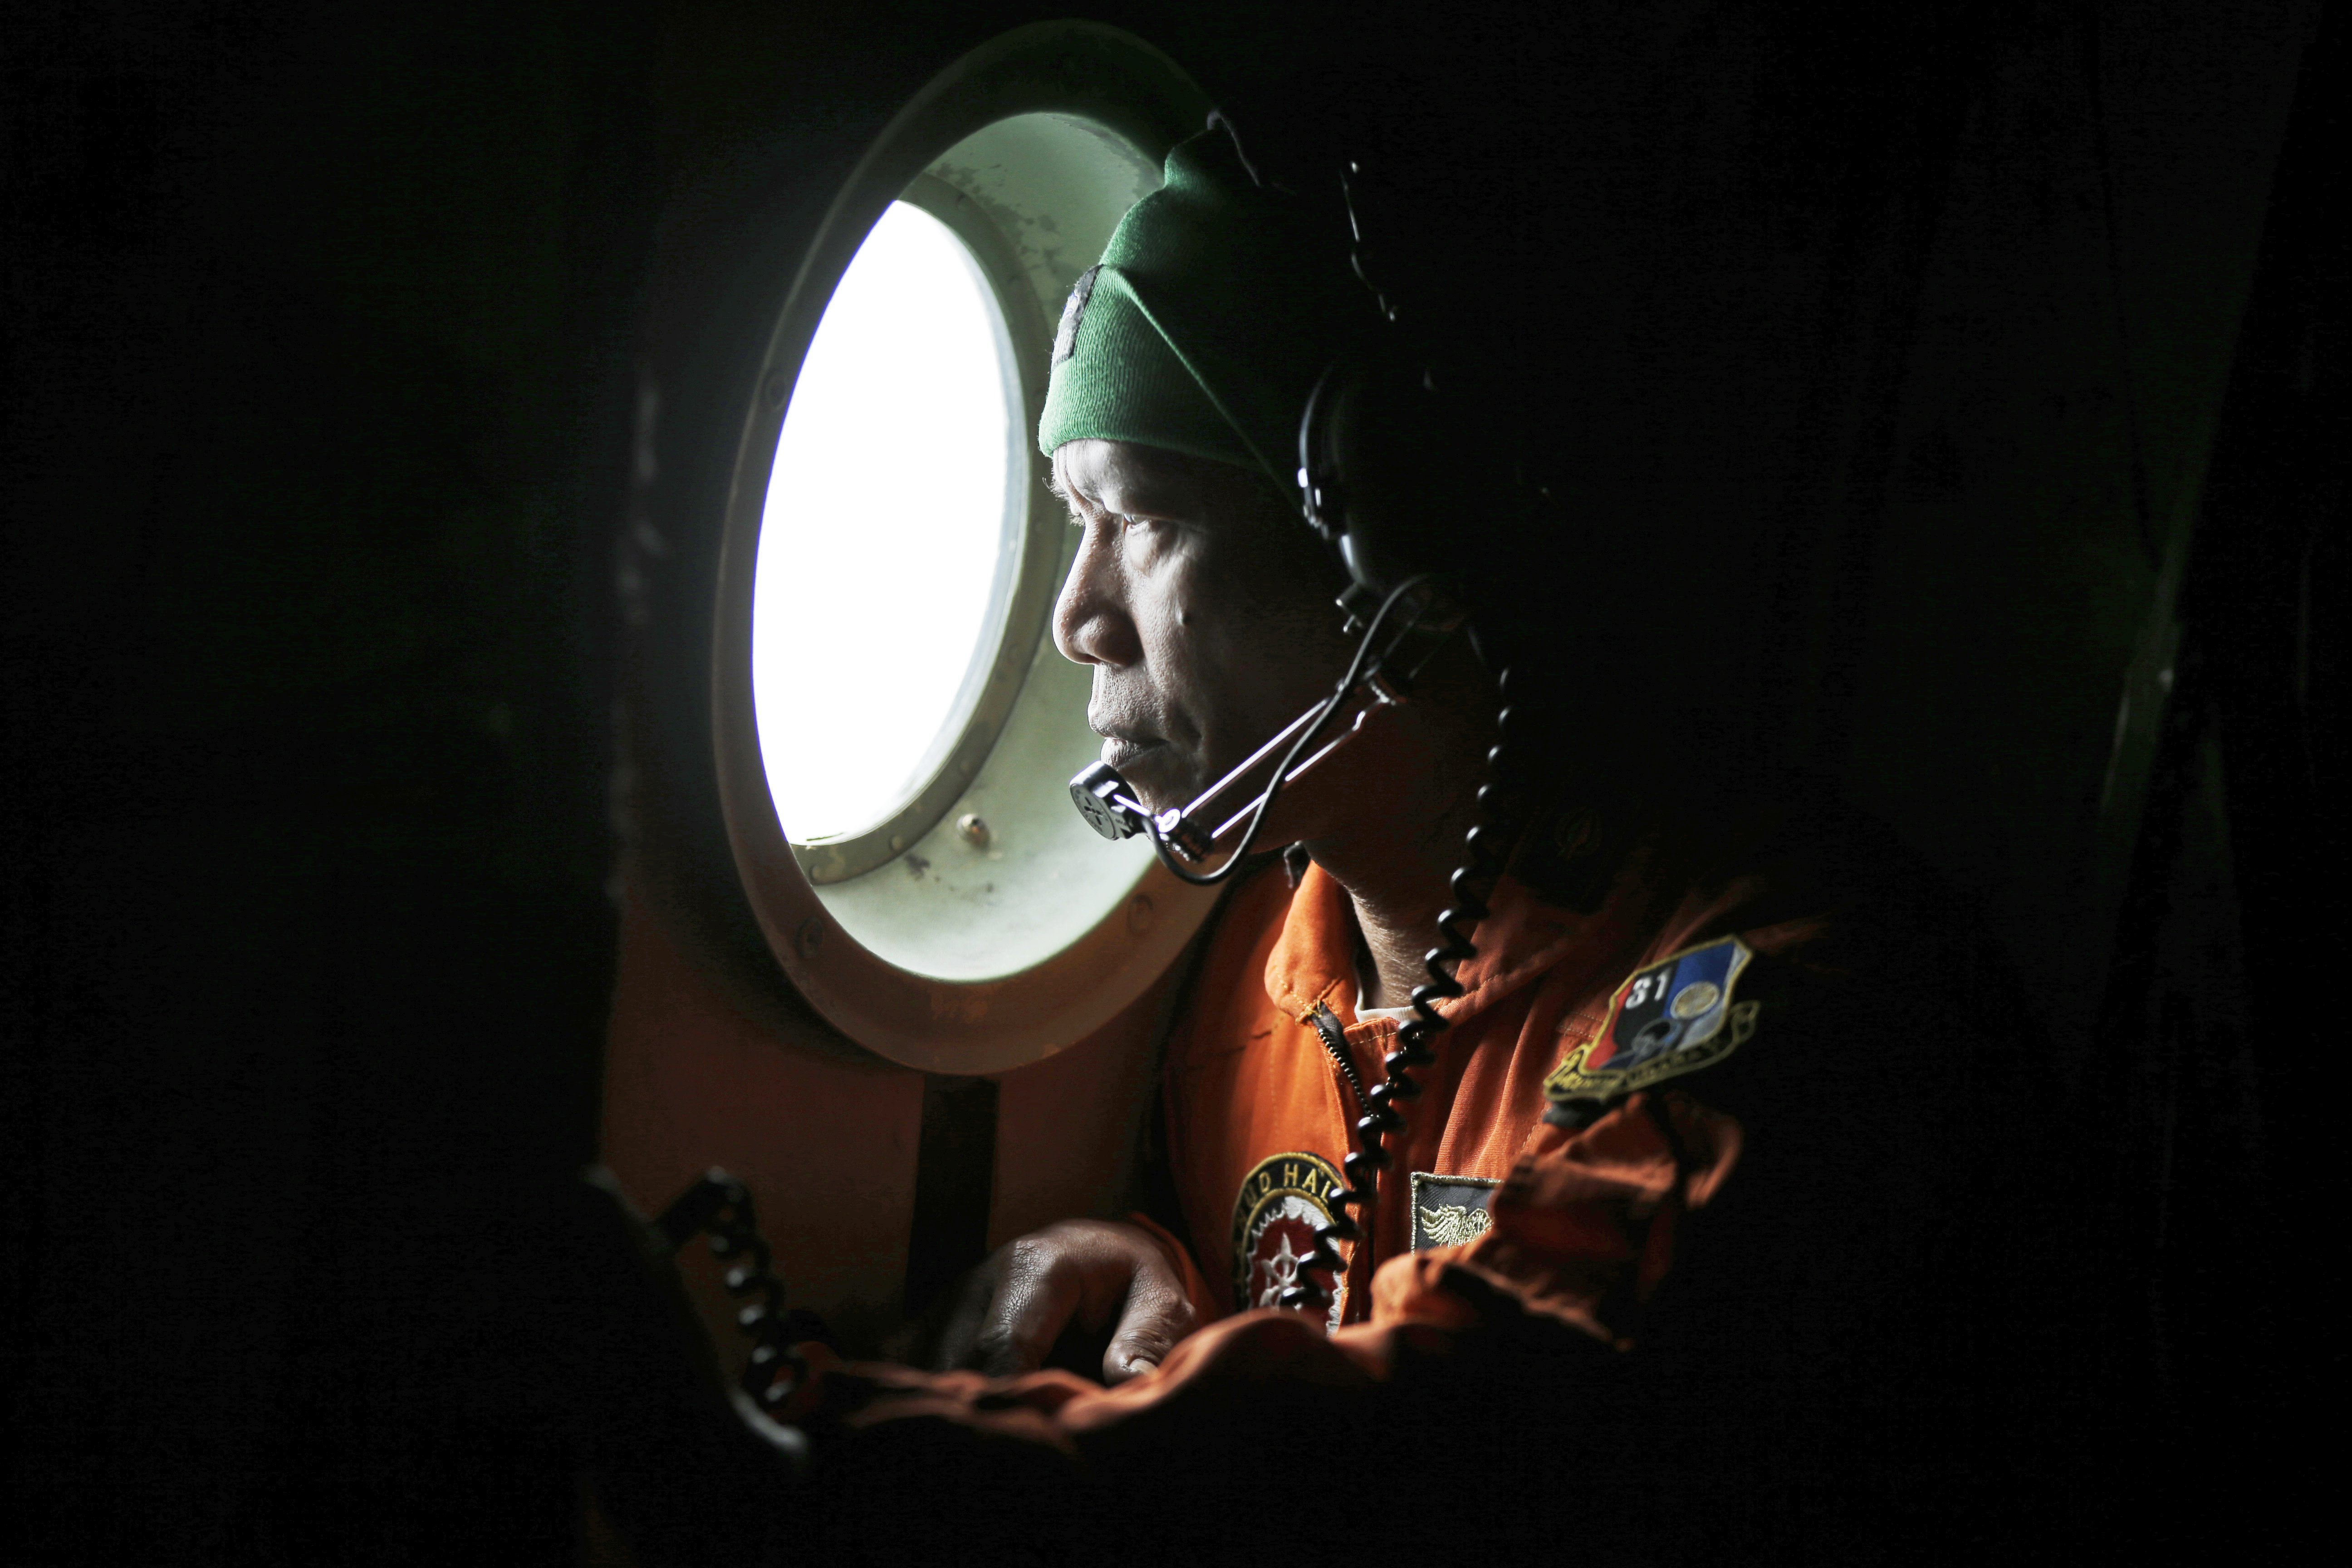 A crew member of the Indonesian air force's C-130 airplane looks out of the window during a search operation for the missing AirAsia Flight QZ 8501 jetliner over the waters of Karimata Strait in Indonesia on Dec. 29, 2014